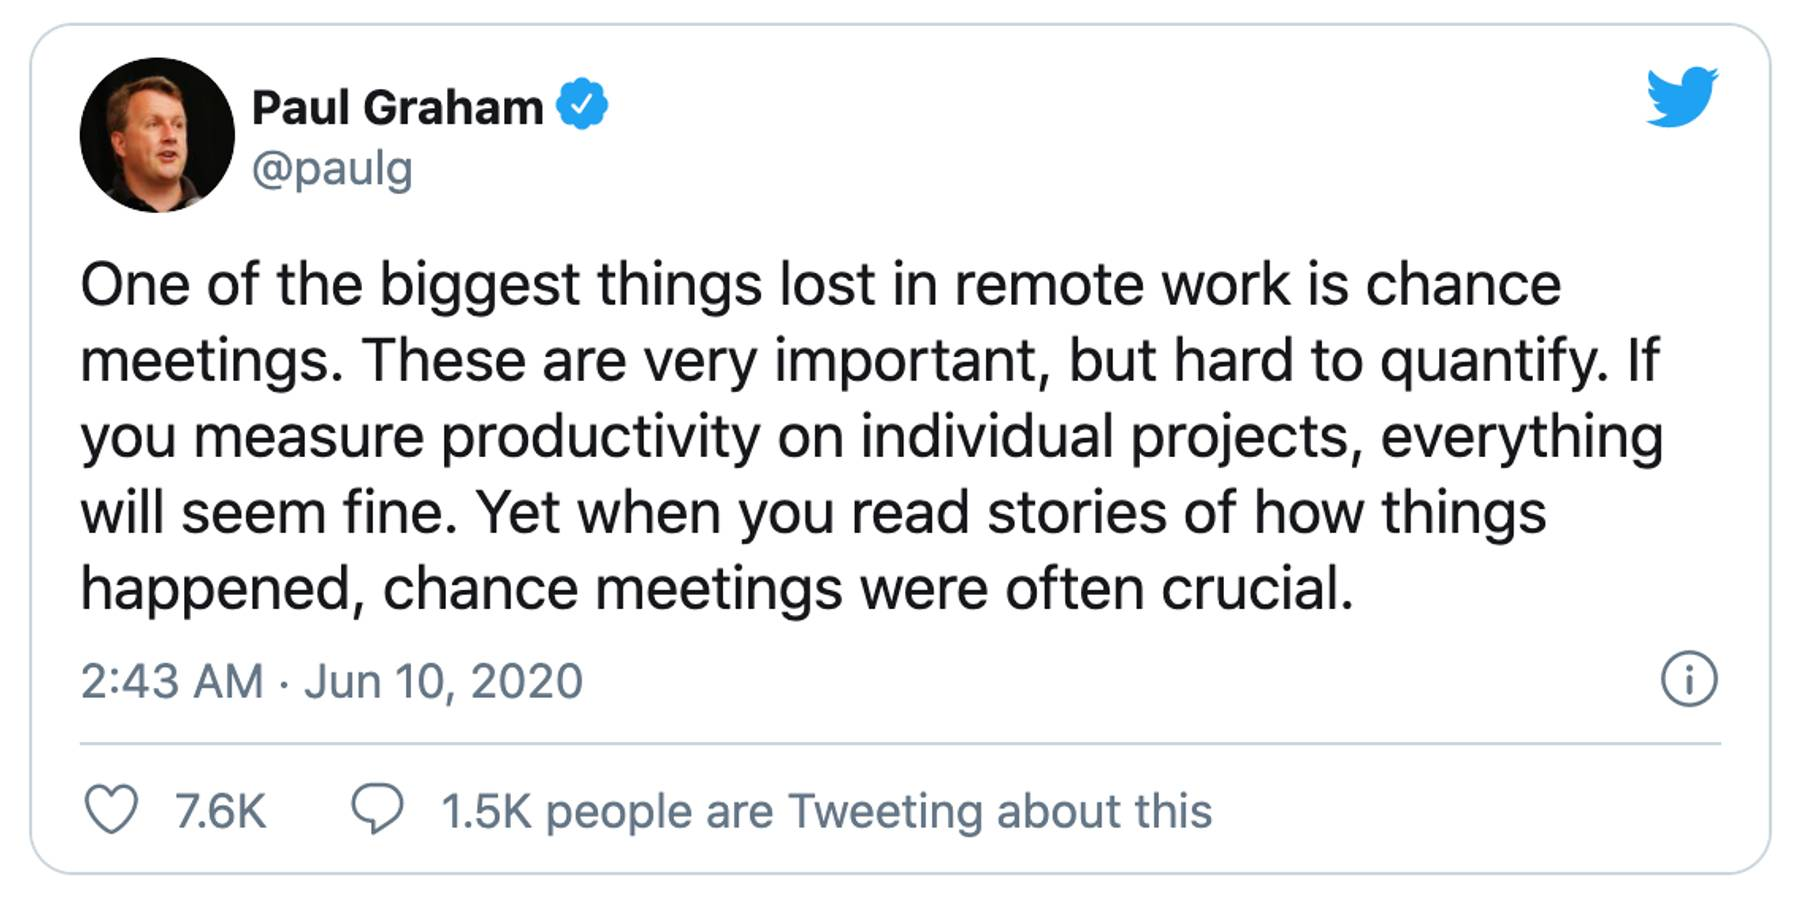 One of the biggest things lost in remote work is chance meetings. These are very important, but hard to quantify. If you measure productivity on individual projects, everything will seem fine. Yet when you read stories of how things happened, chance meetings were often crucial.